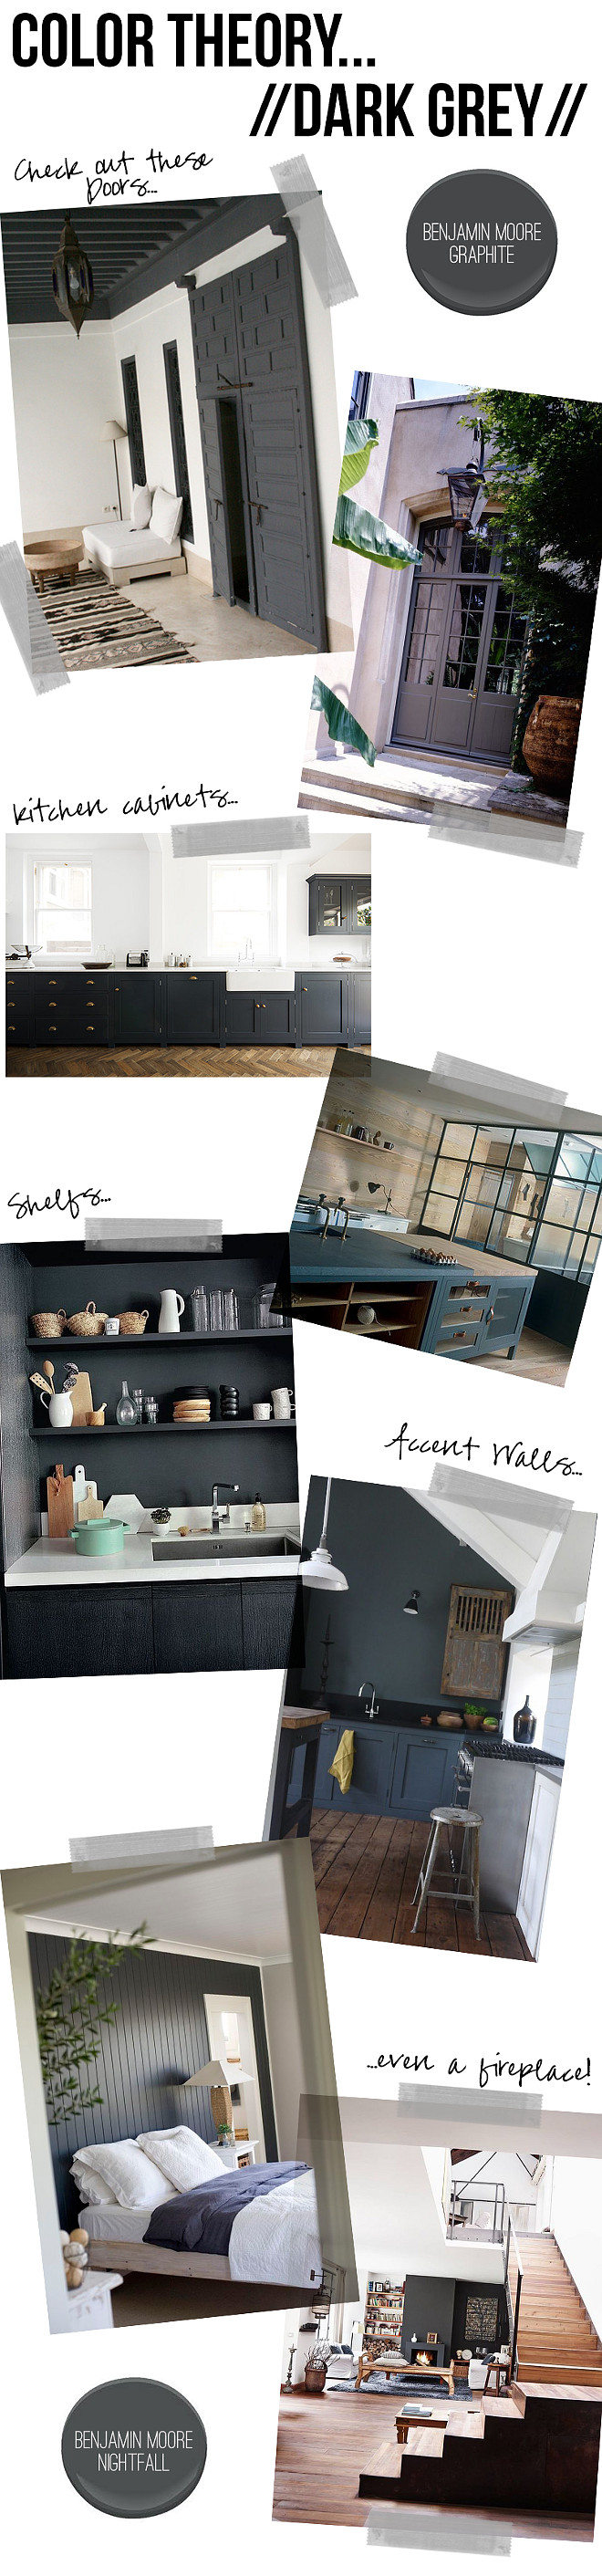 Dark Gray Paint Colors. Top Dark Gray Paint Colors. Best Dark Gray Paint Colors. Where to use dark gray paint colors. Benjamin Moore Graphite. Benjamin Moore NightFall #BenjaminMooreGraphite #BenjaminMooreNightFall Designer Recommended Dark Gray Paint Colors. #DarkGrayPaintColors #TopDarkGrayPaintColors #BestDarkGrayPaintColors #DesignerRecommendedDarkGrayPaintColors #DesignerRecommendedGrayPaintColors #DesignerRecommendedPaintColors Amber Interiors